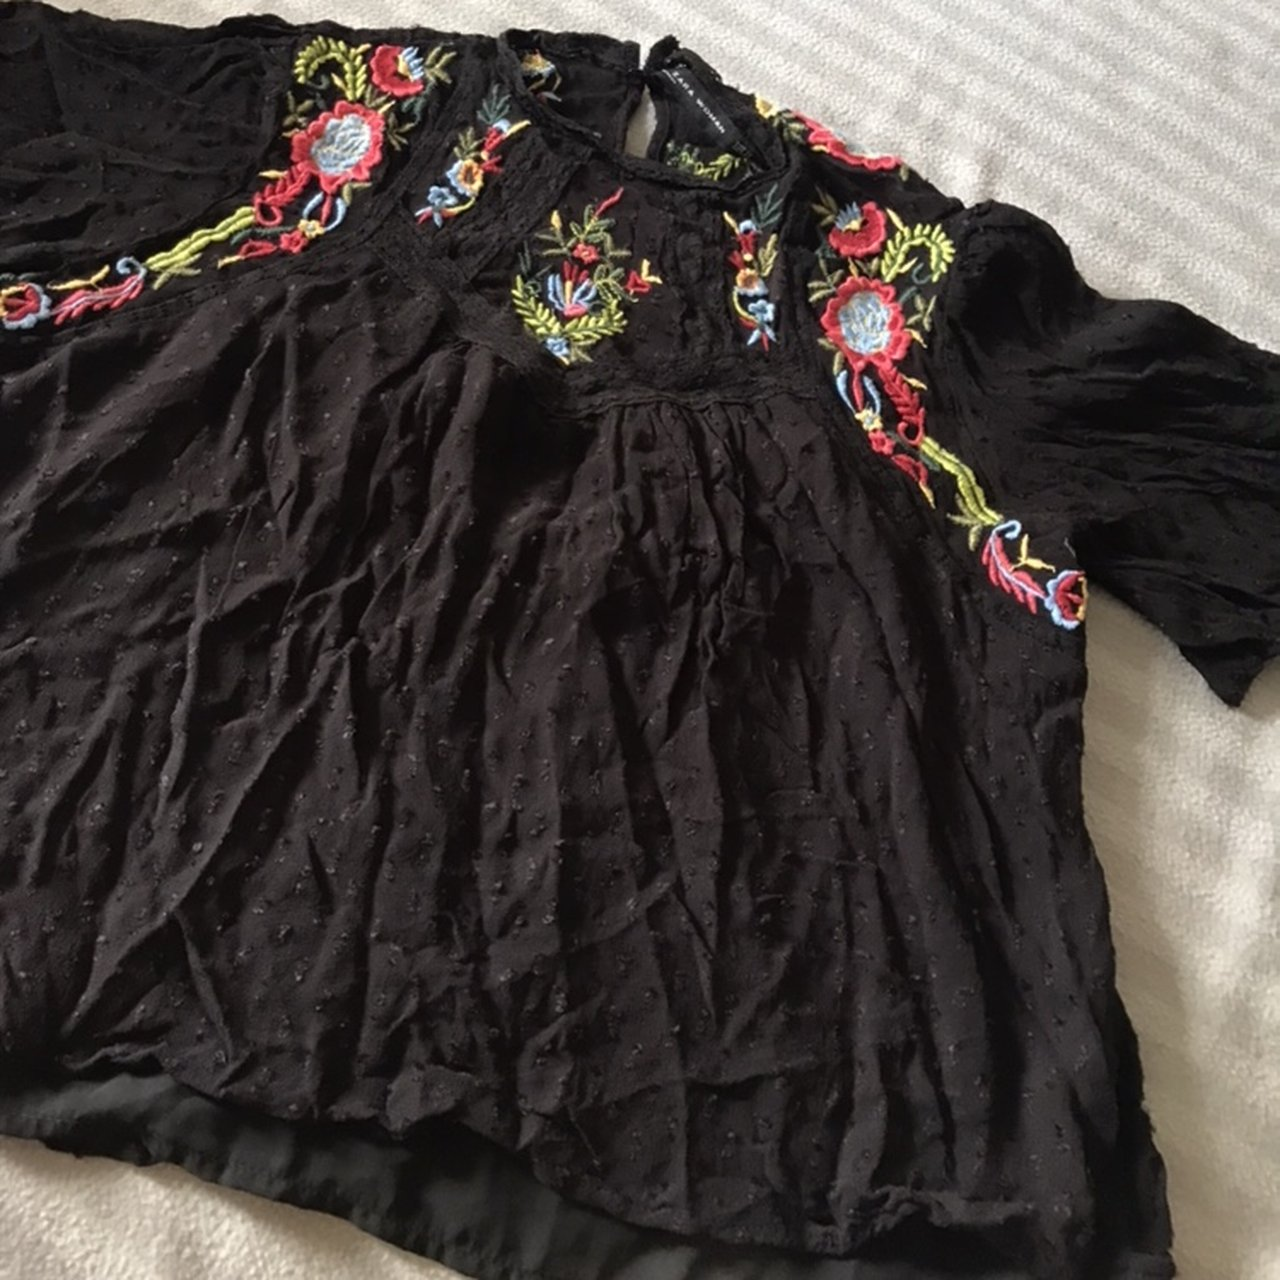 6f8956a93c9 ZARA WOMENS SIZE XS  uk 6 Black floral embroidered floaty - Depop